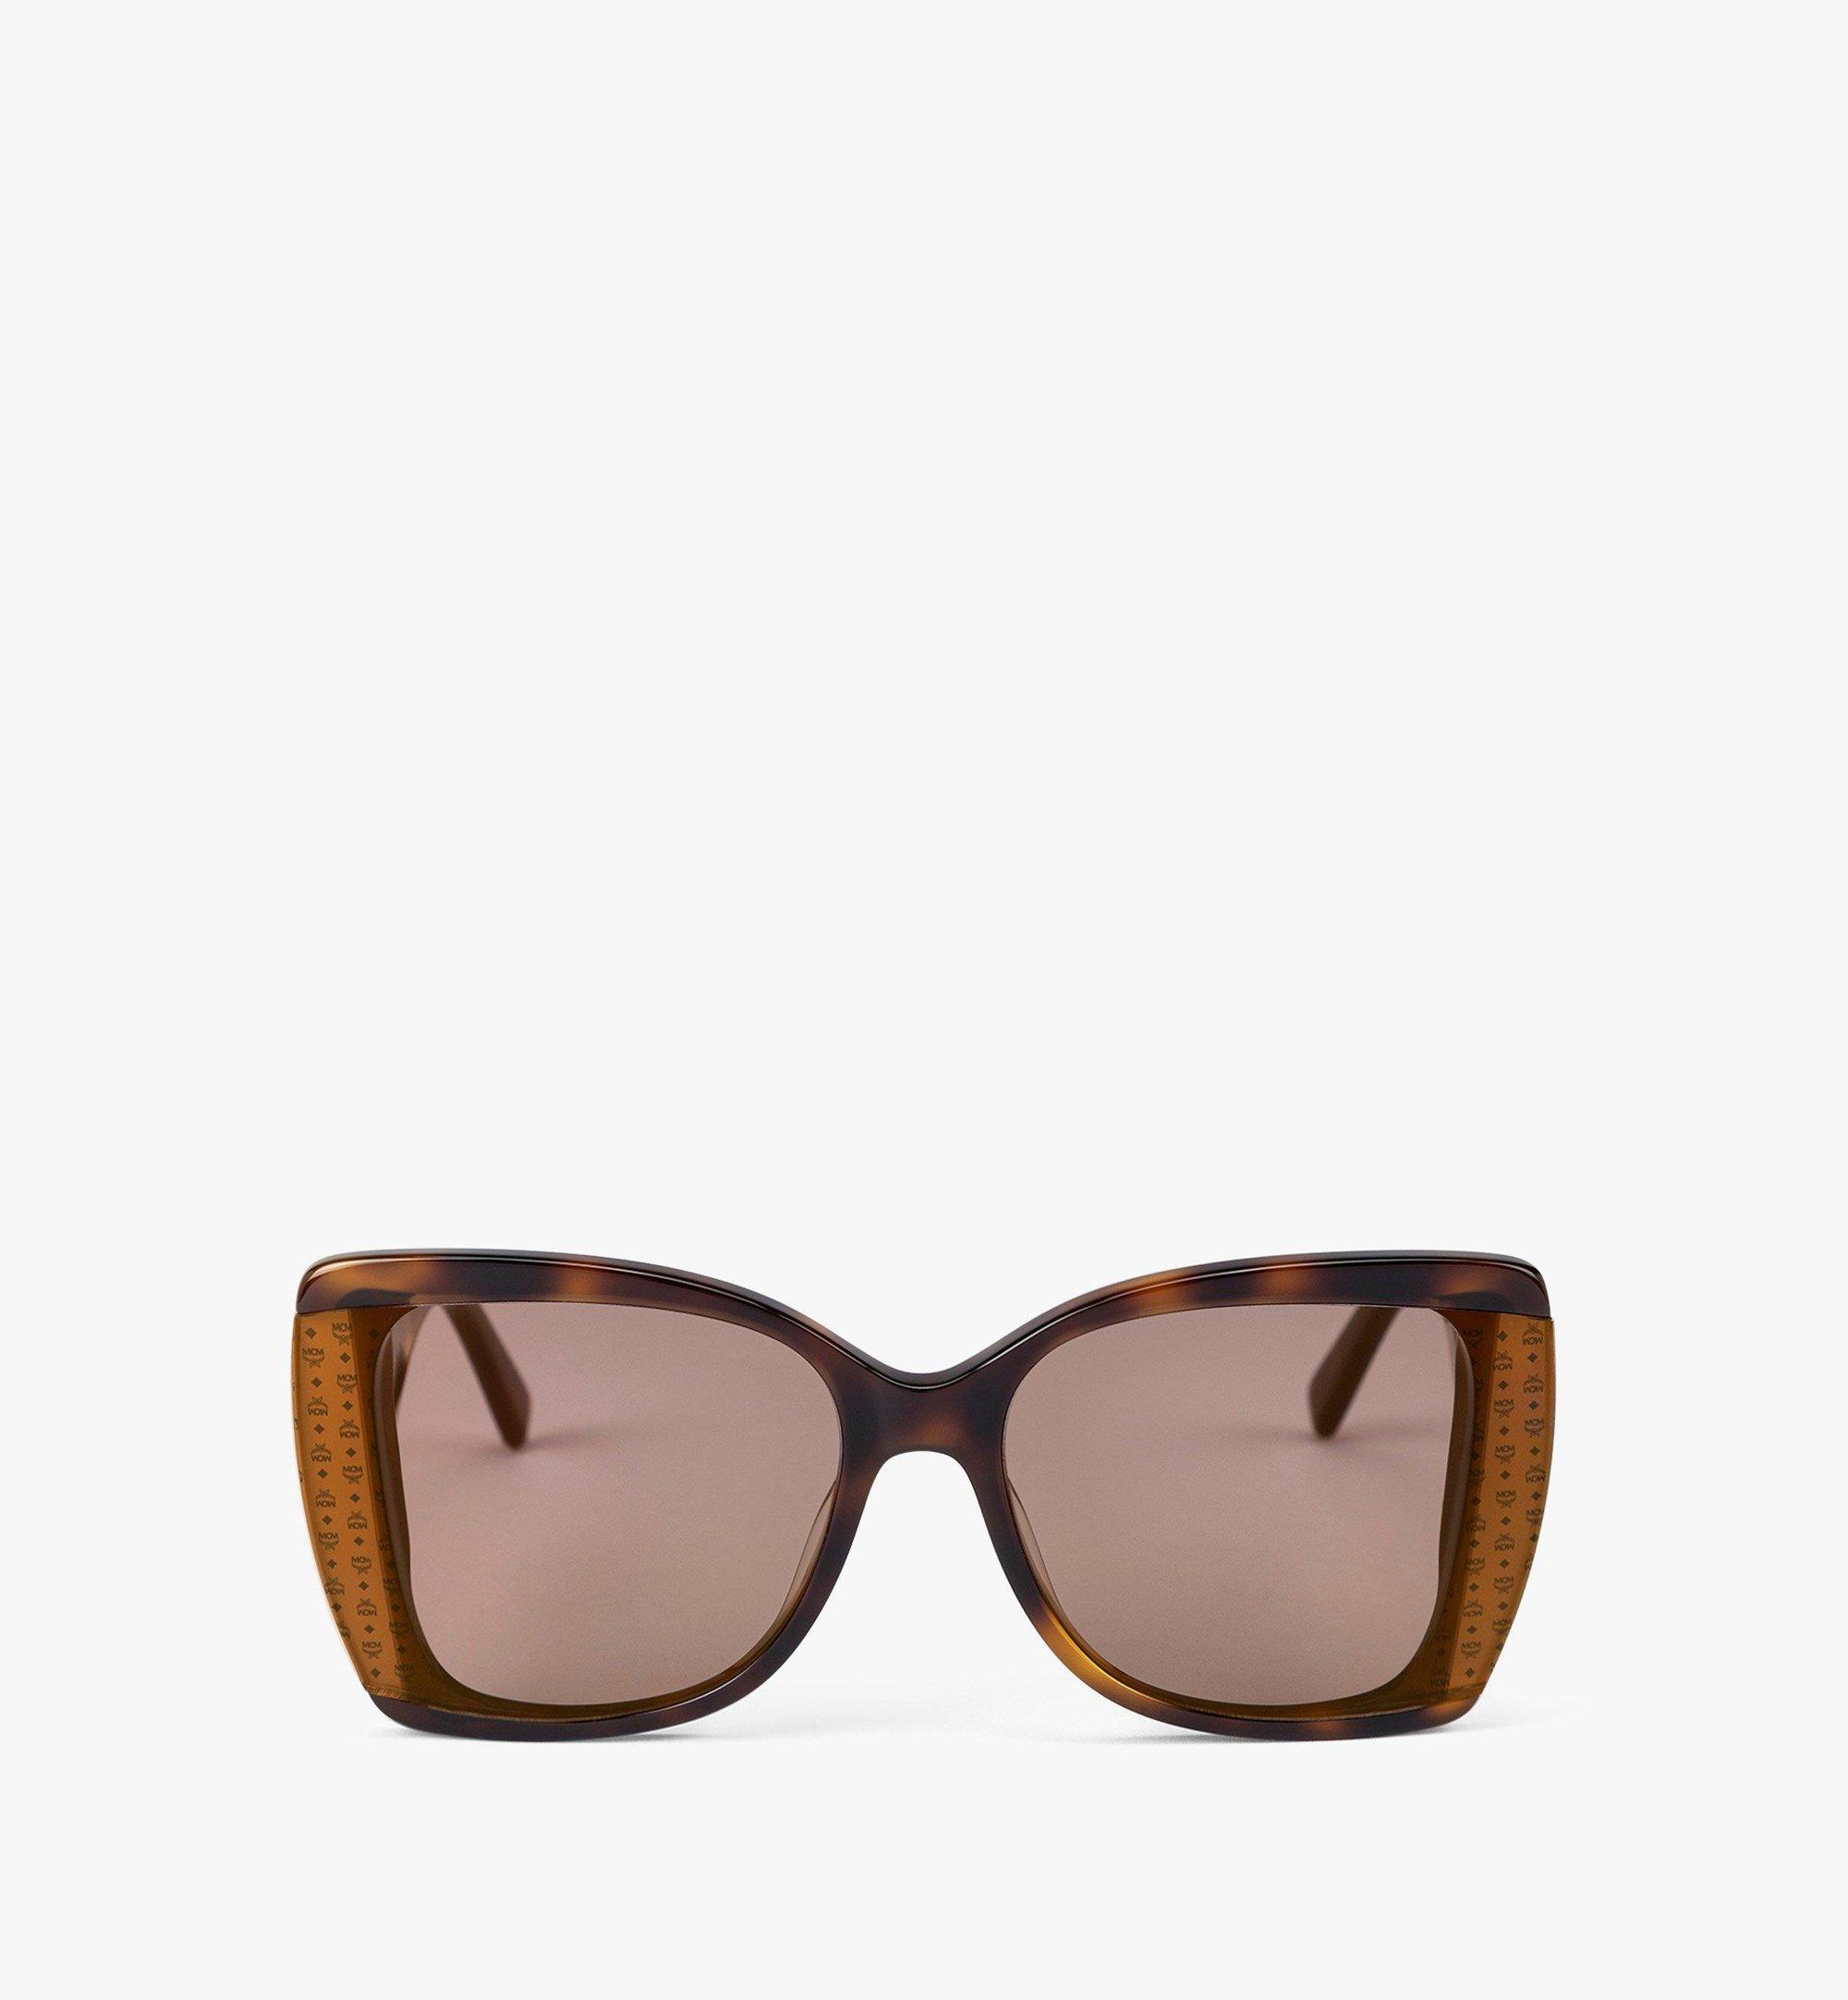 MCM MCM710S Butterfly Sunglasses Brown MEGBAMM06N3001 Alternate View 1